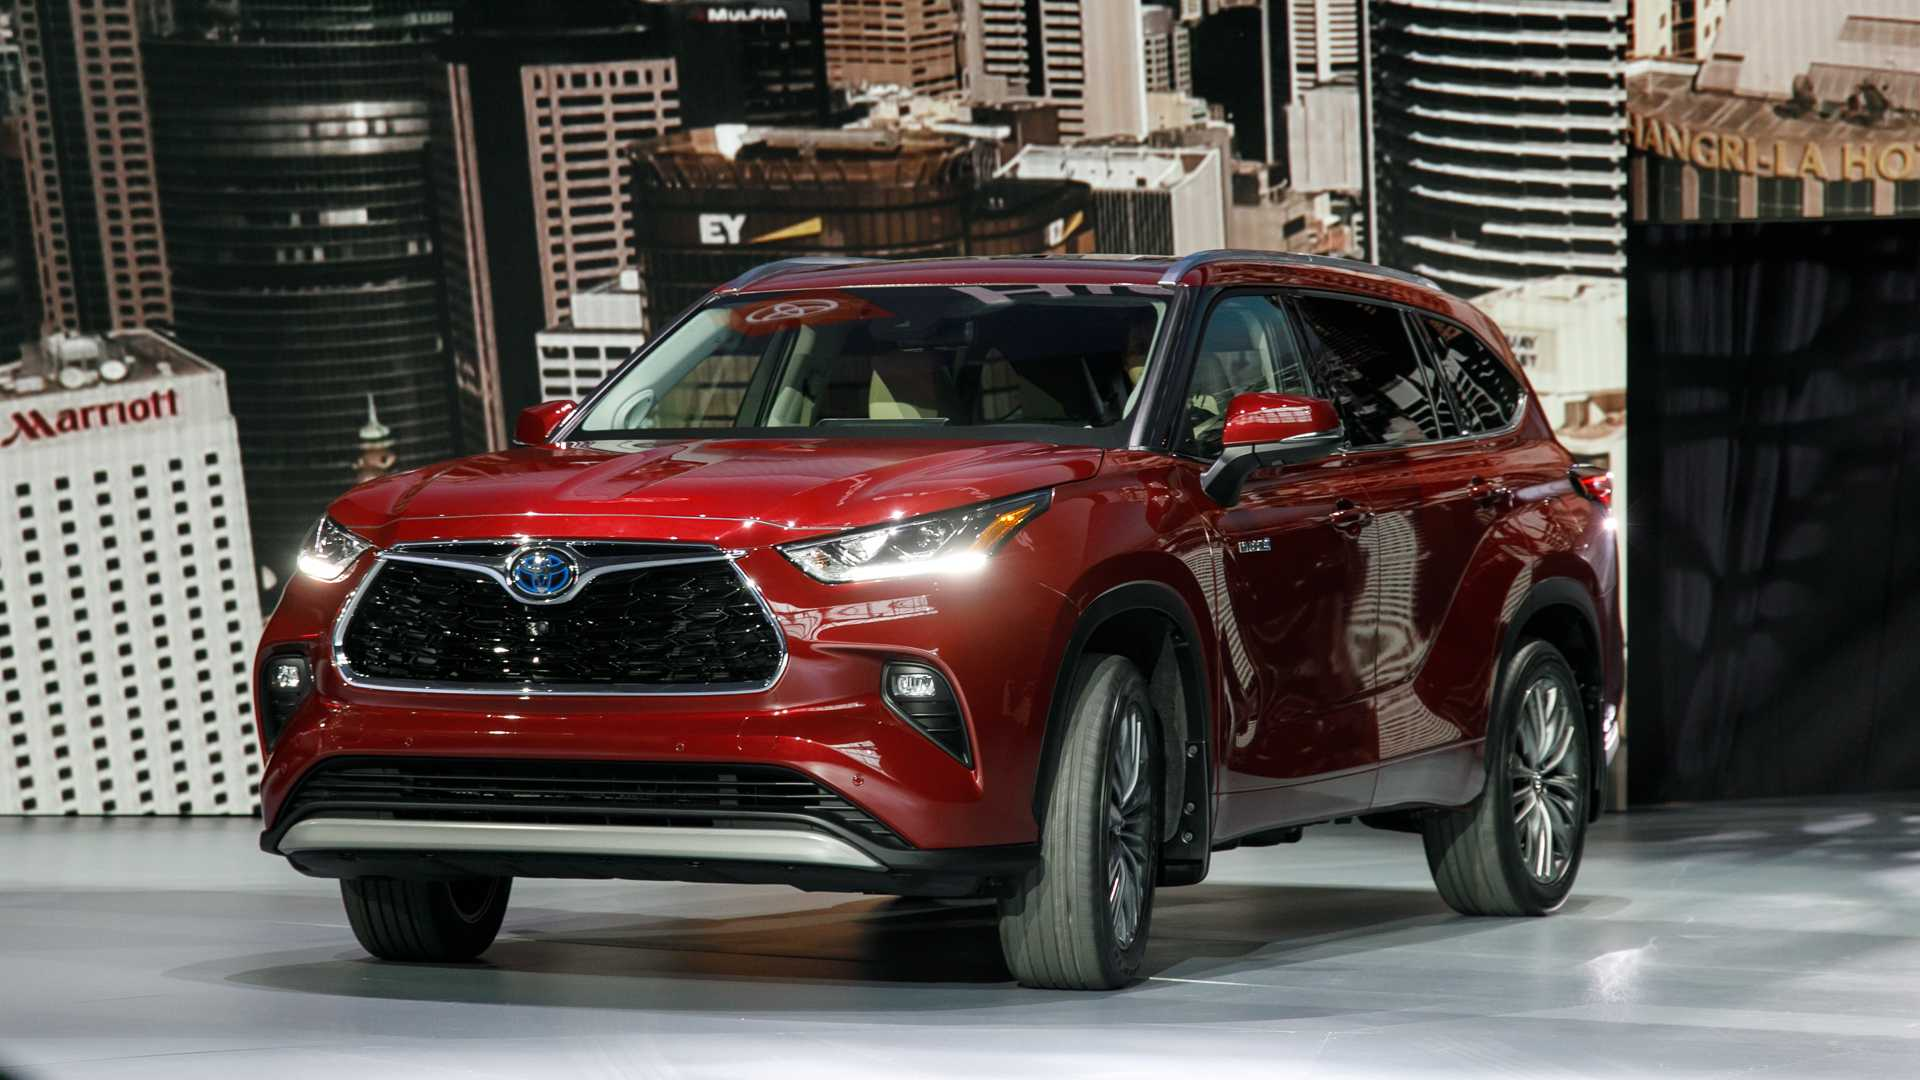 90 Concept of Toyota Kluger New 2020 Picture for Toyota Kluger New 2020